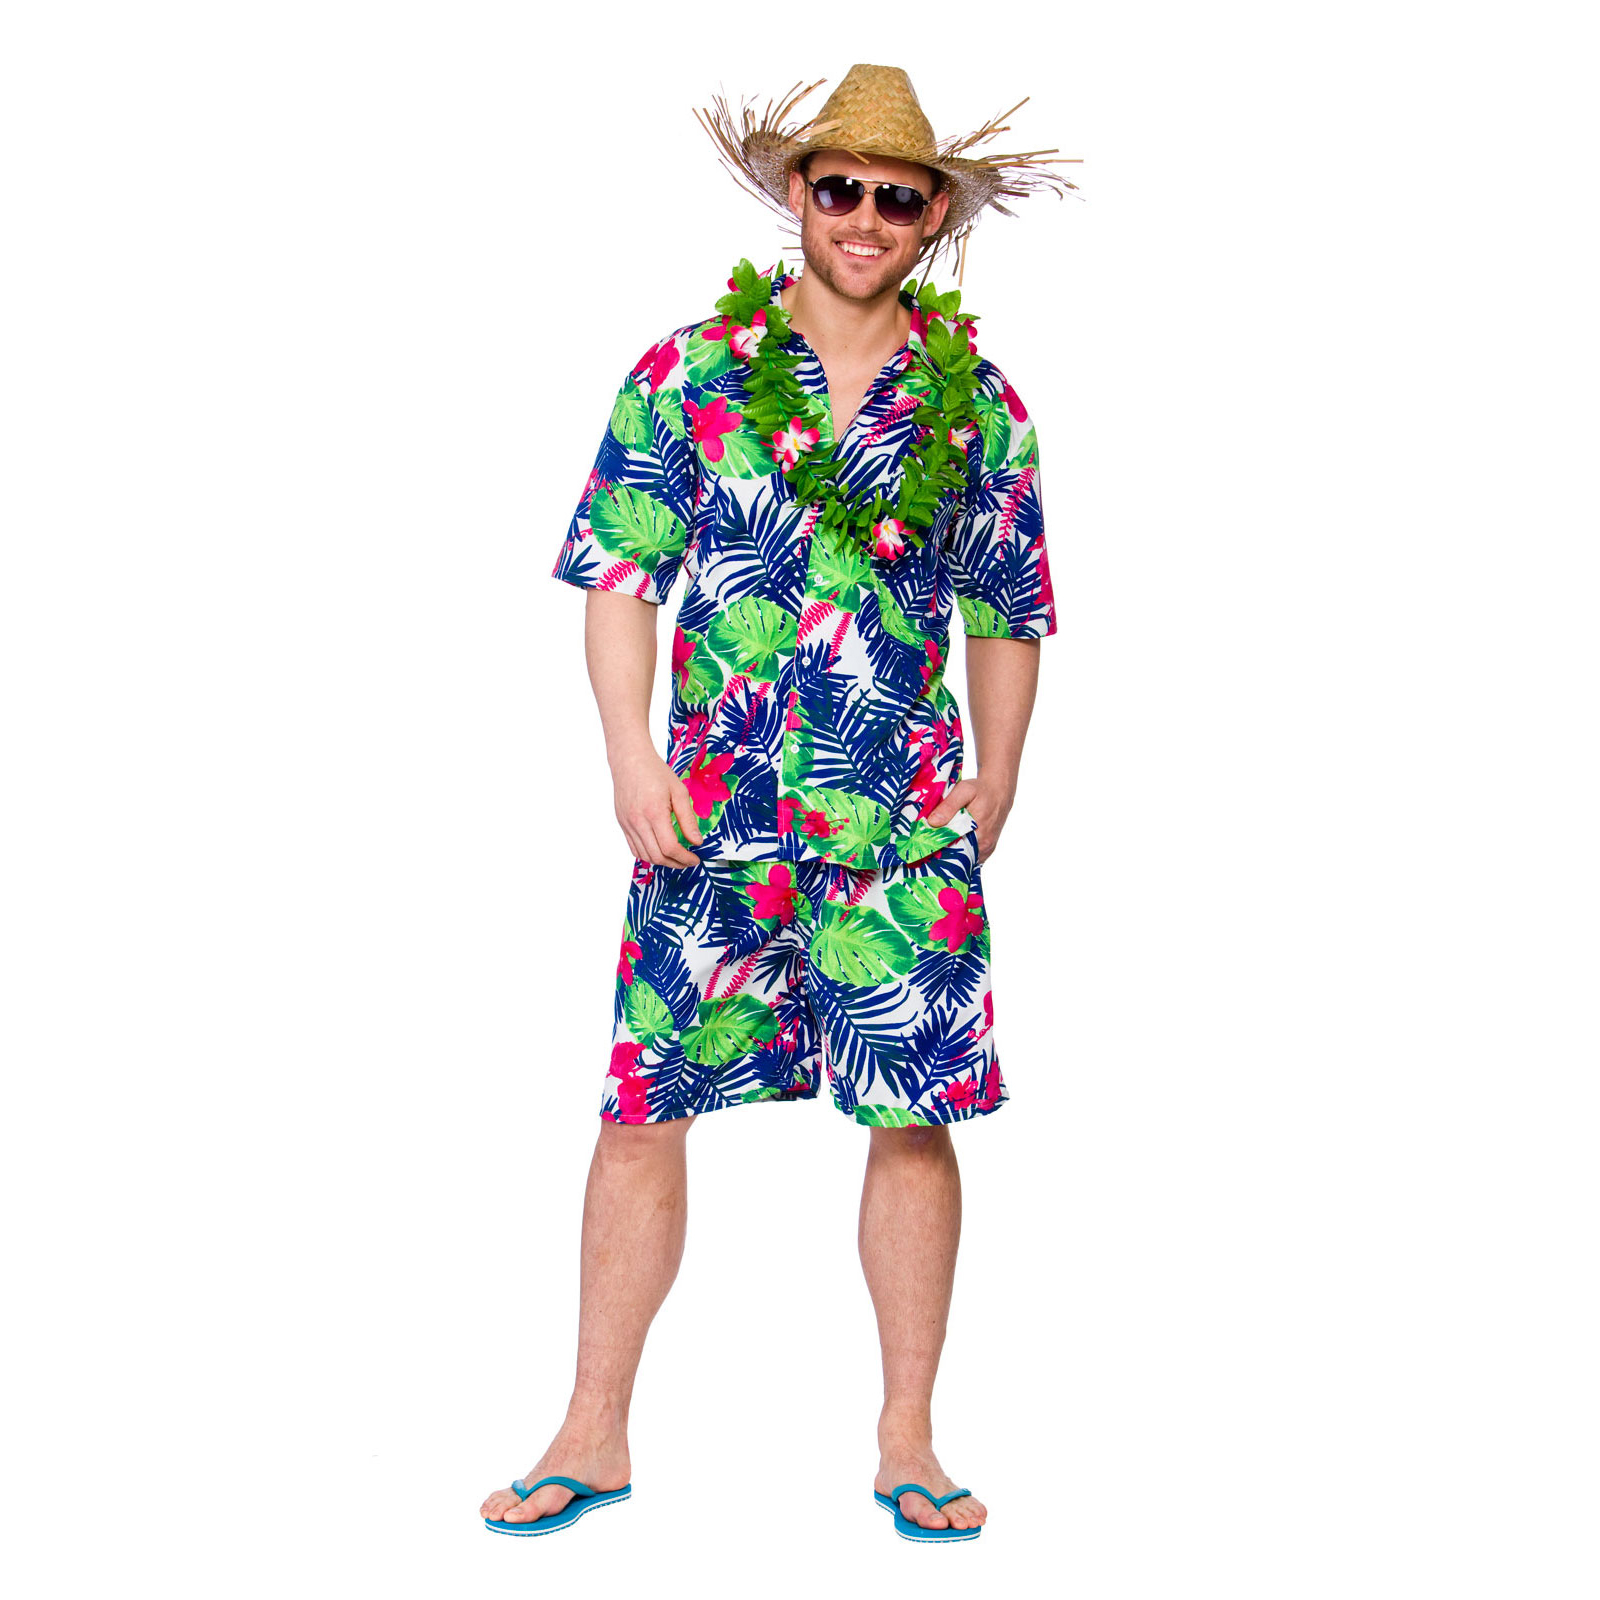 Funny Hawaiian Party Guy Shirt u0026 Shorts Fancy Dress Up Party Costume Outfit New | eBay